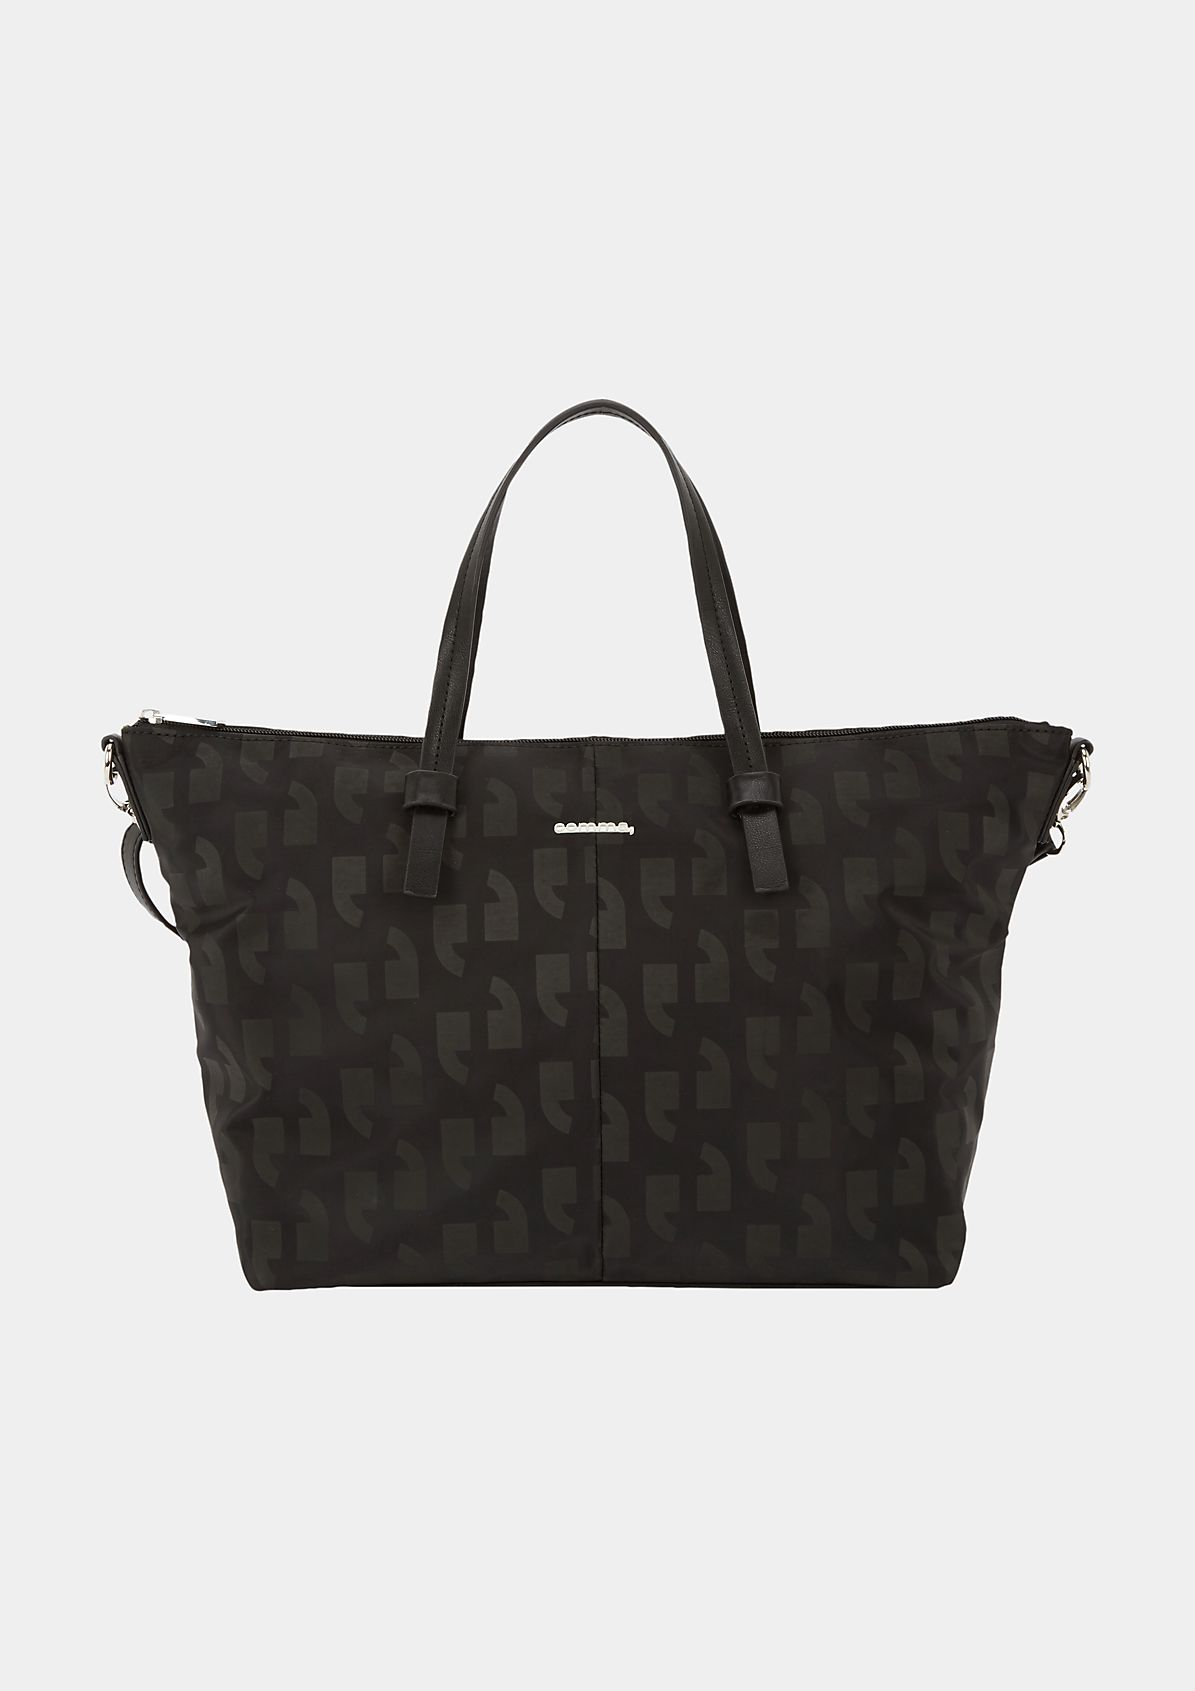 Volumige Shoppingbag mit comma-Muster